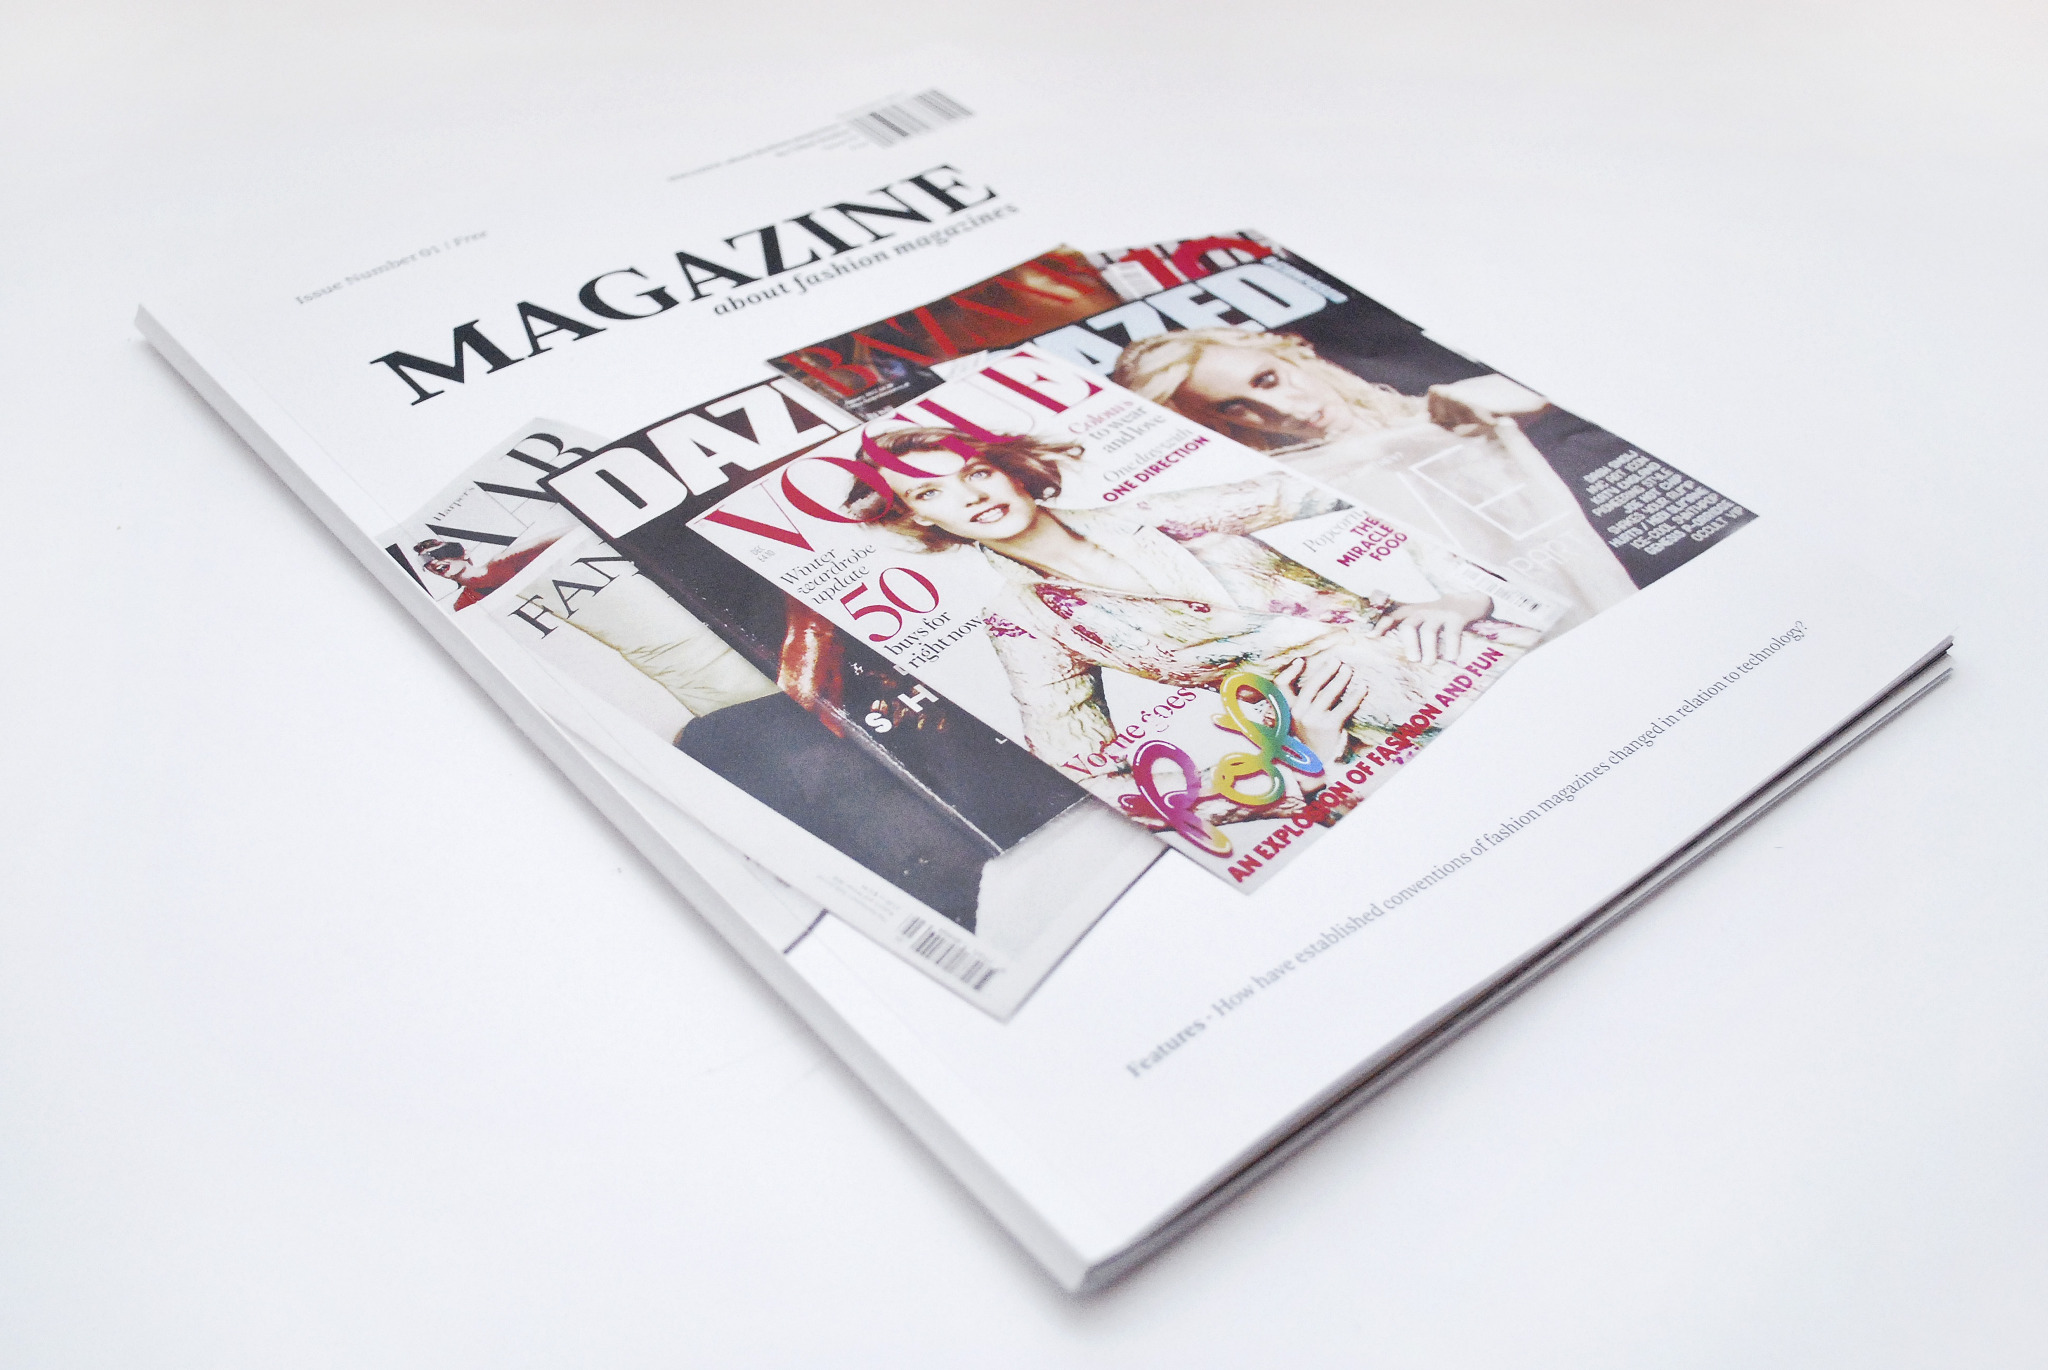 Magazine About Fashion Magazines Chloe Boulos